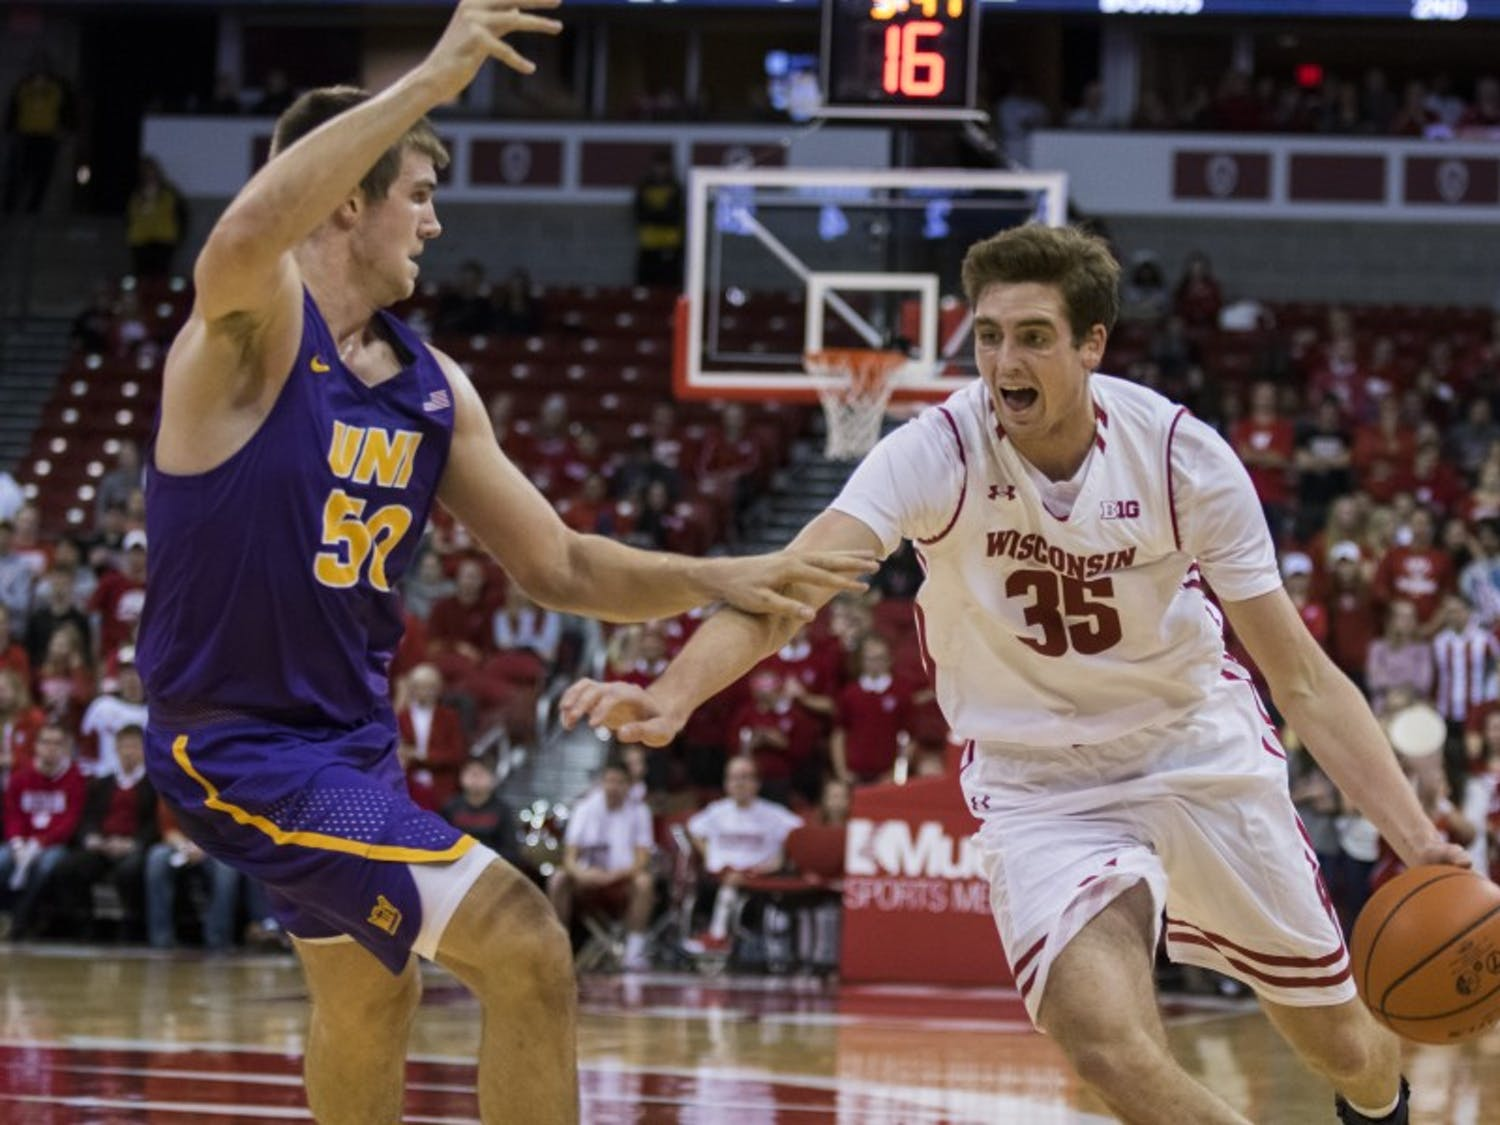 Despite a strong performance from sophomore forward Nate Reuvers, the Badgers fell short to the Maryland Terrapins.